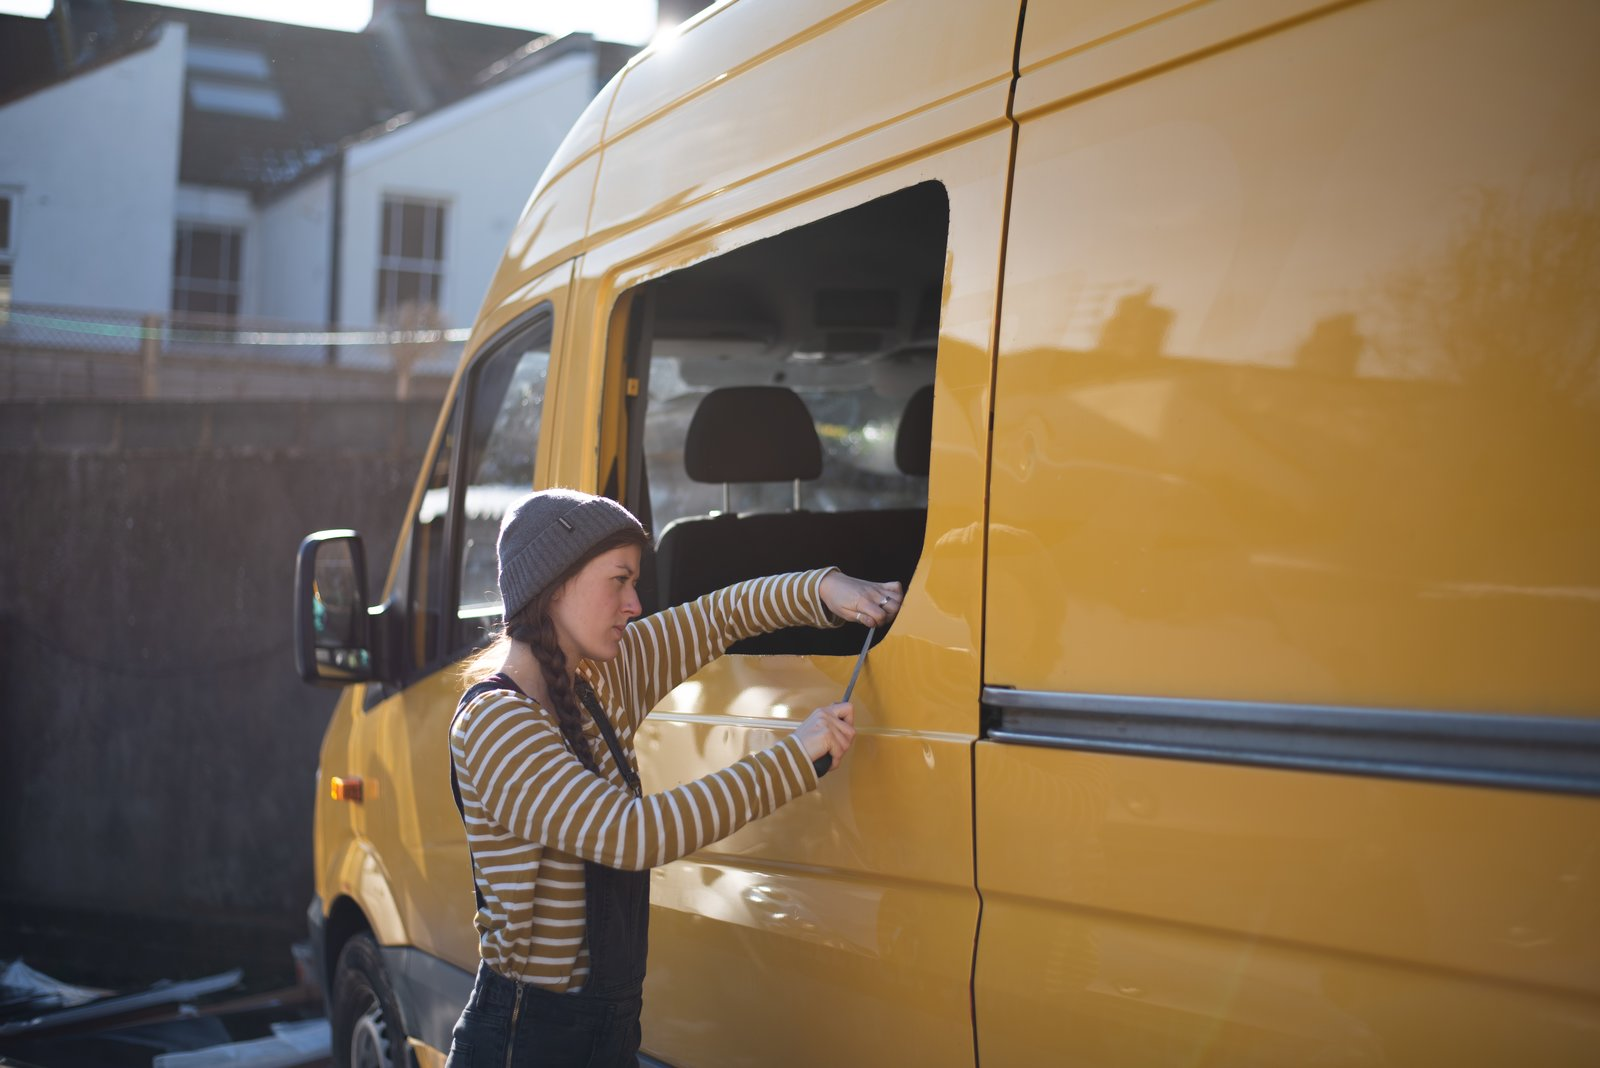 Charlie files away the rough edges of the new window opening.   Photo 7 of 22 in Budget Breakdown: A Climbing Couple Turn a Delivery Van Into an Adventure Mobile for $8.5K